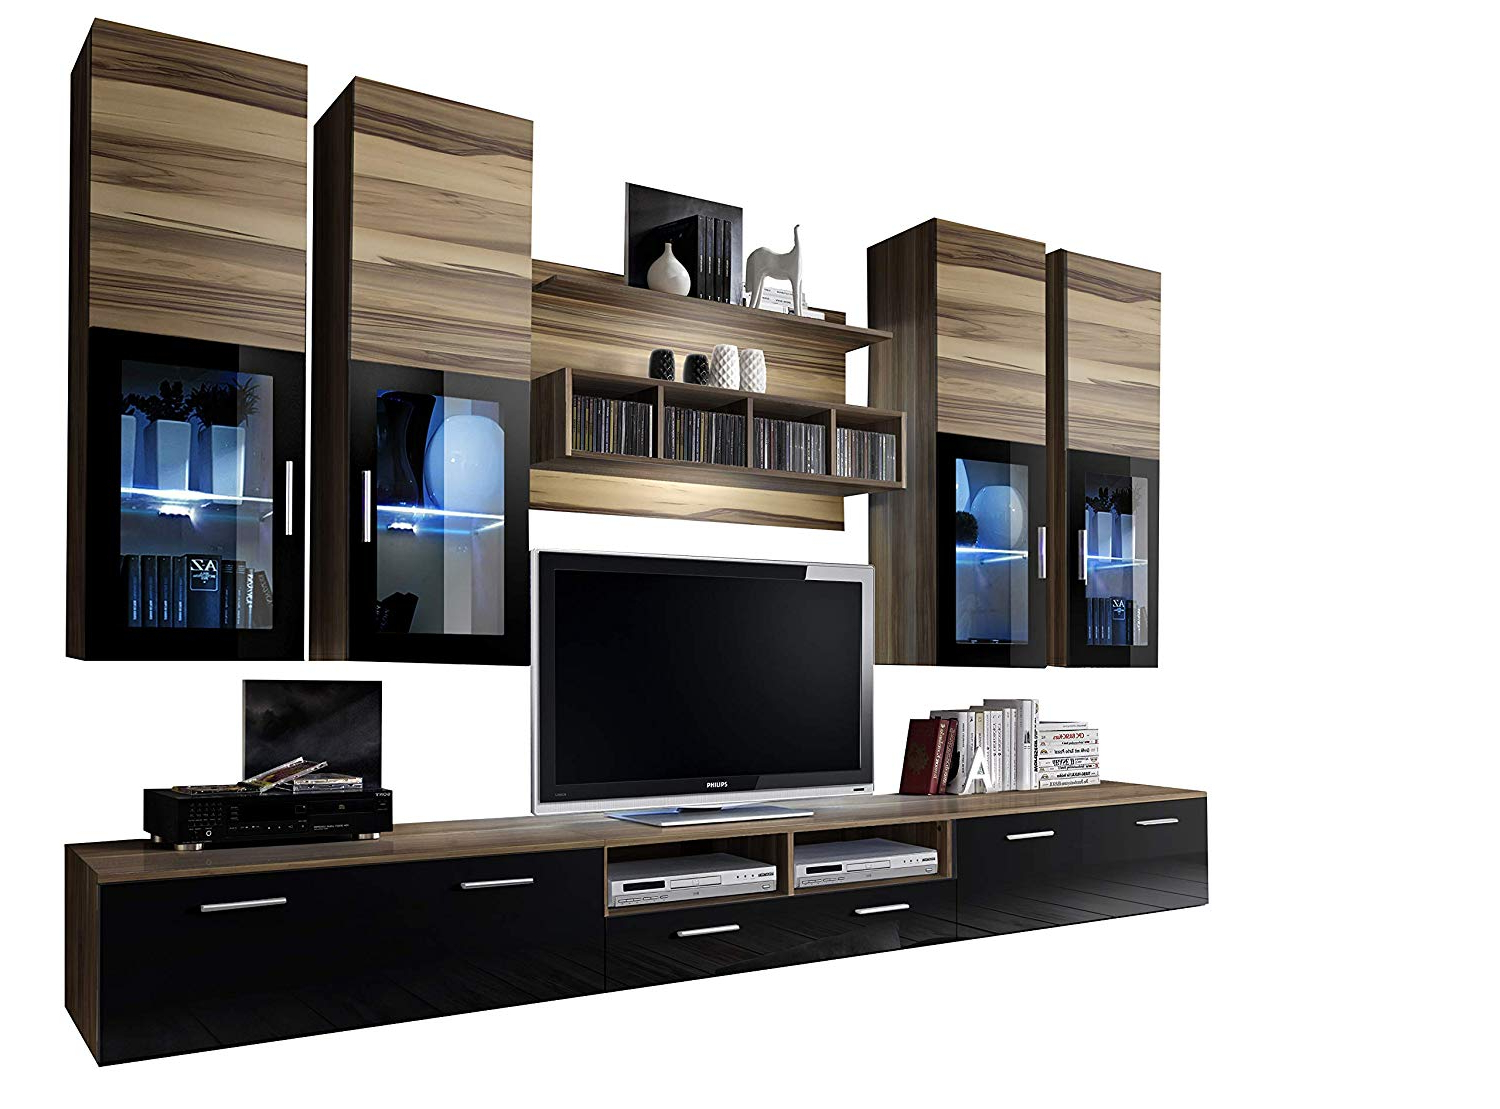 Cheap Bdi Tv Cabinets, Find Bdi Tv Cabinets Deals On Line At Alibaba With Regard To Famous Tv Stands And Cabinets (Gallery 15 of 20)